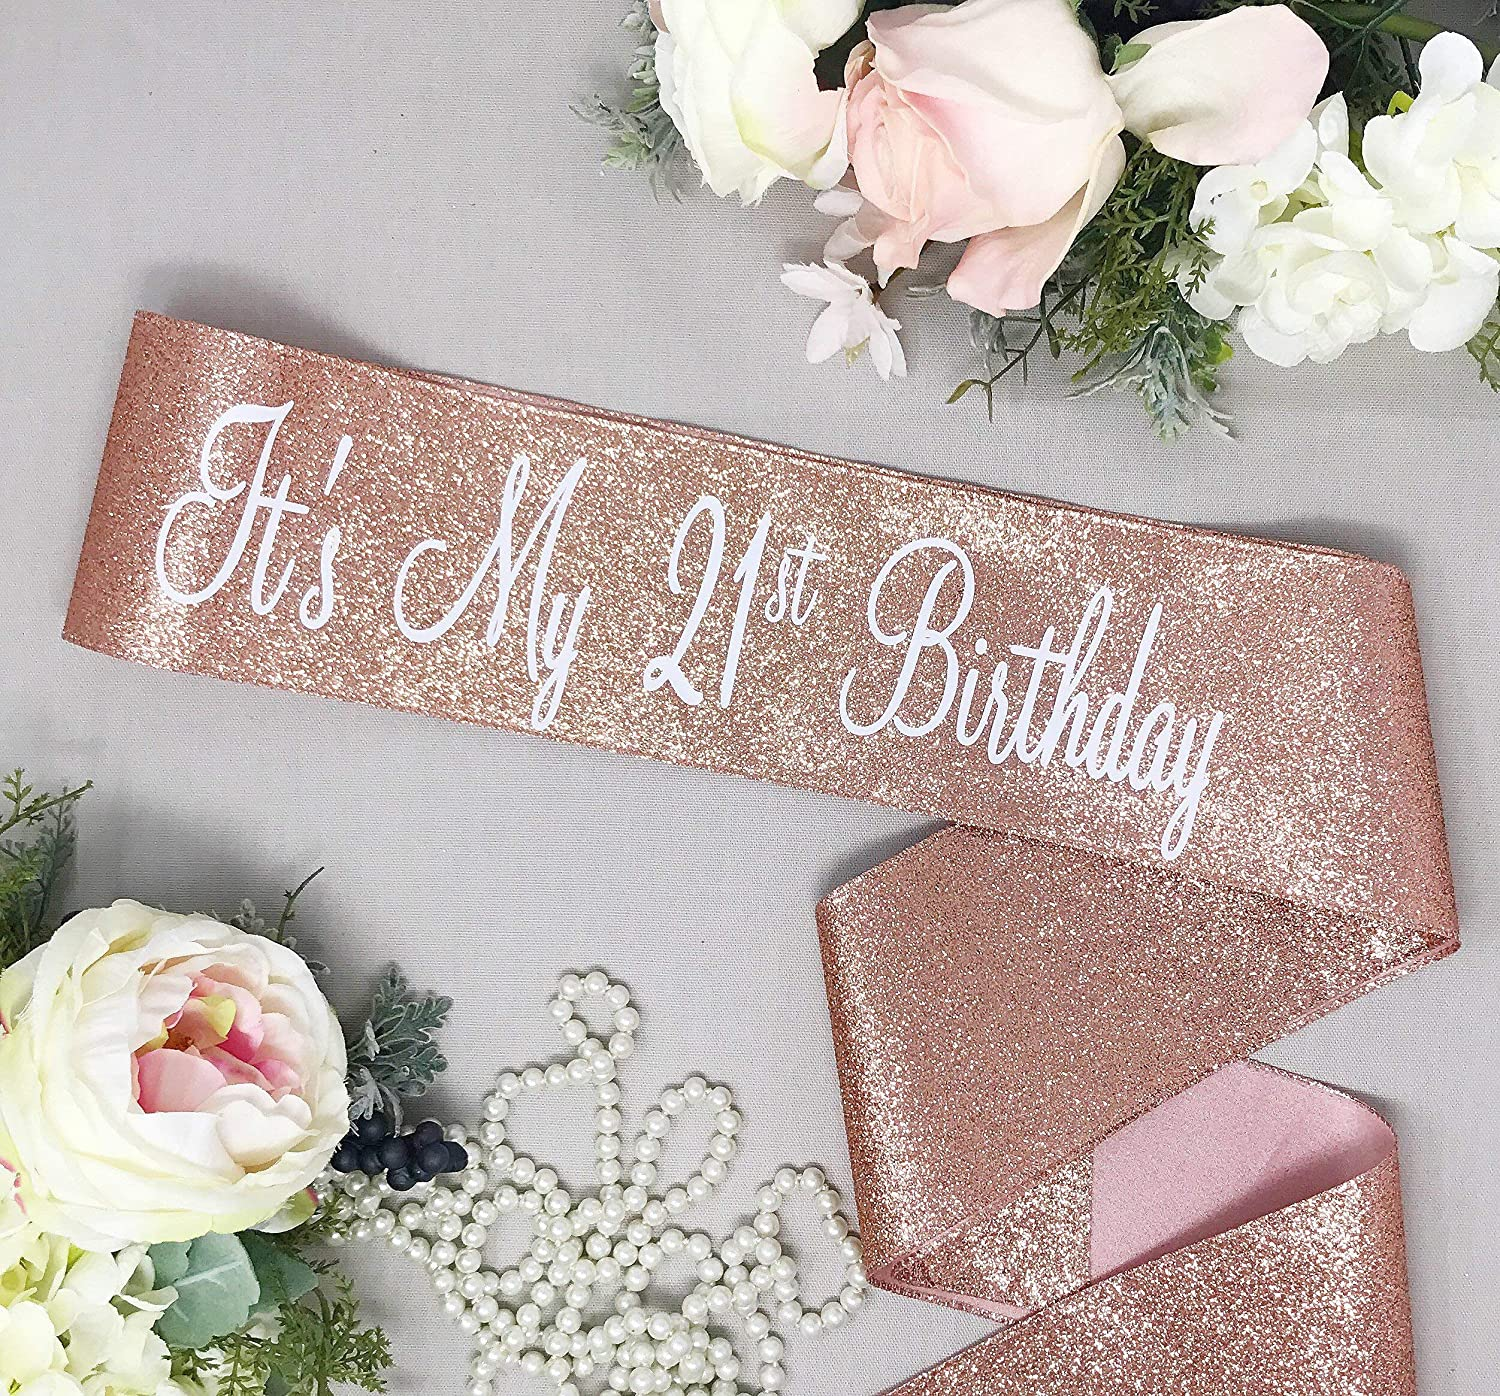 Amazon com: It's My 21st Birthday - Rose Gold Glitter